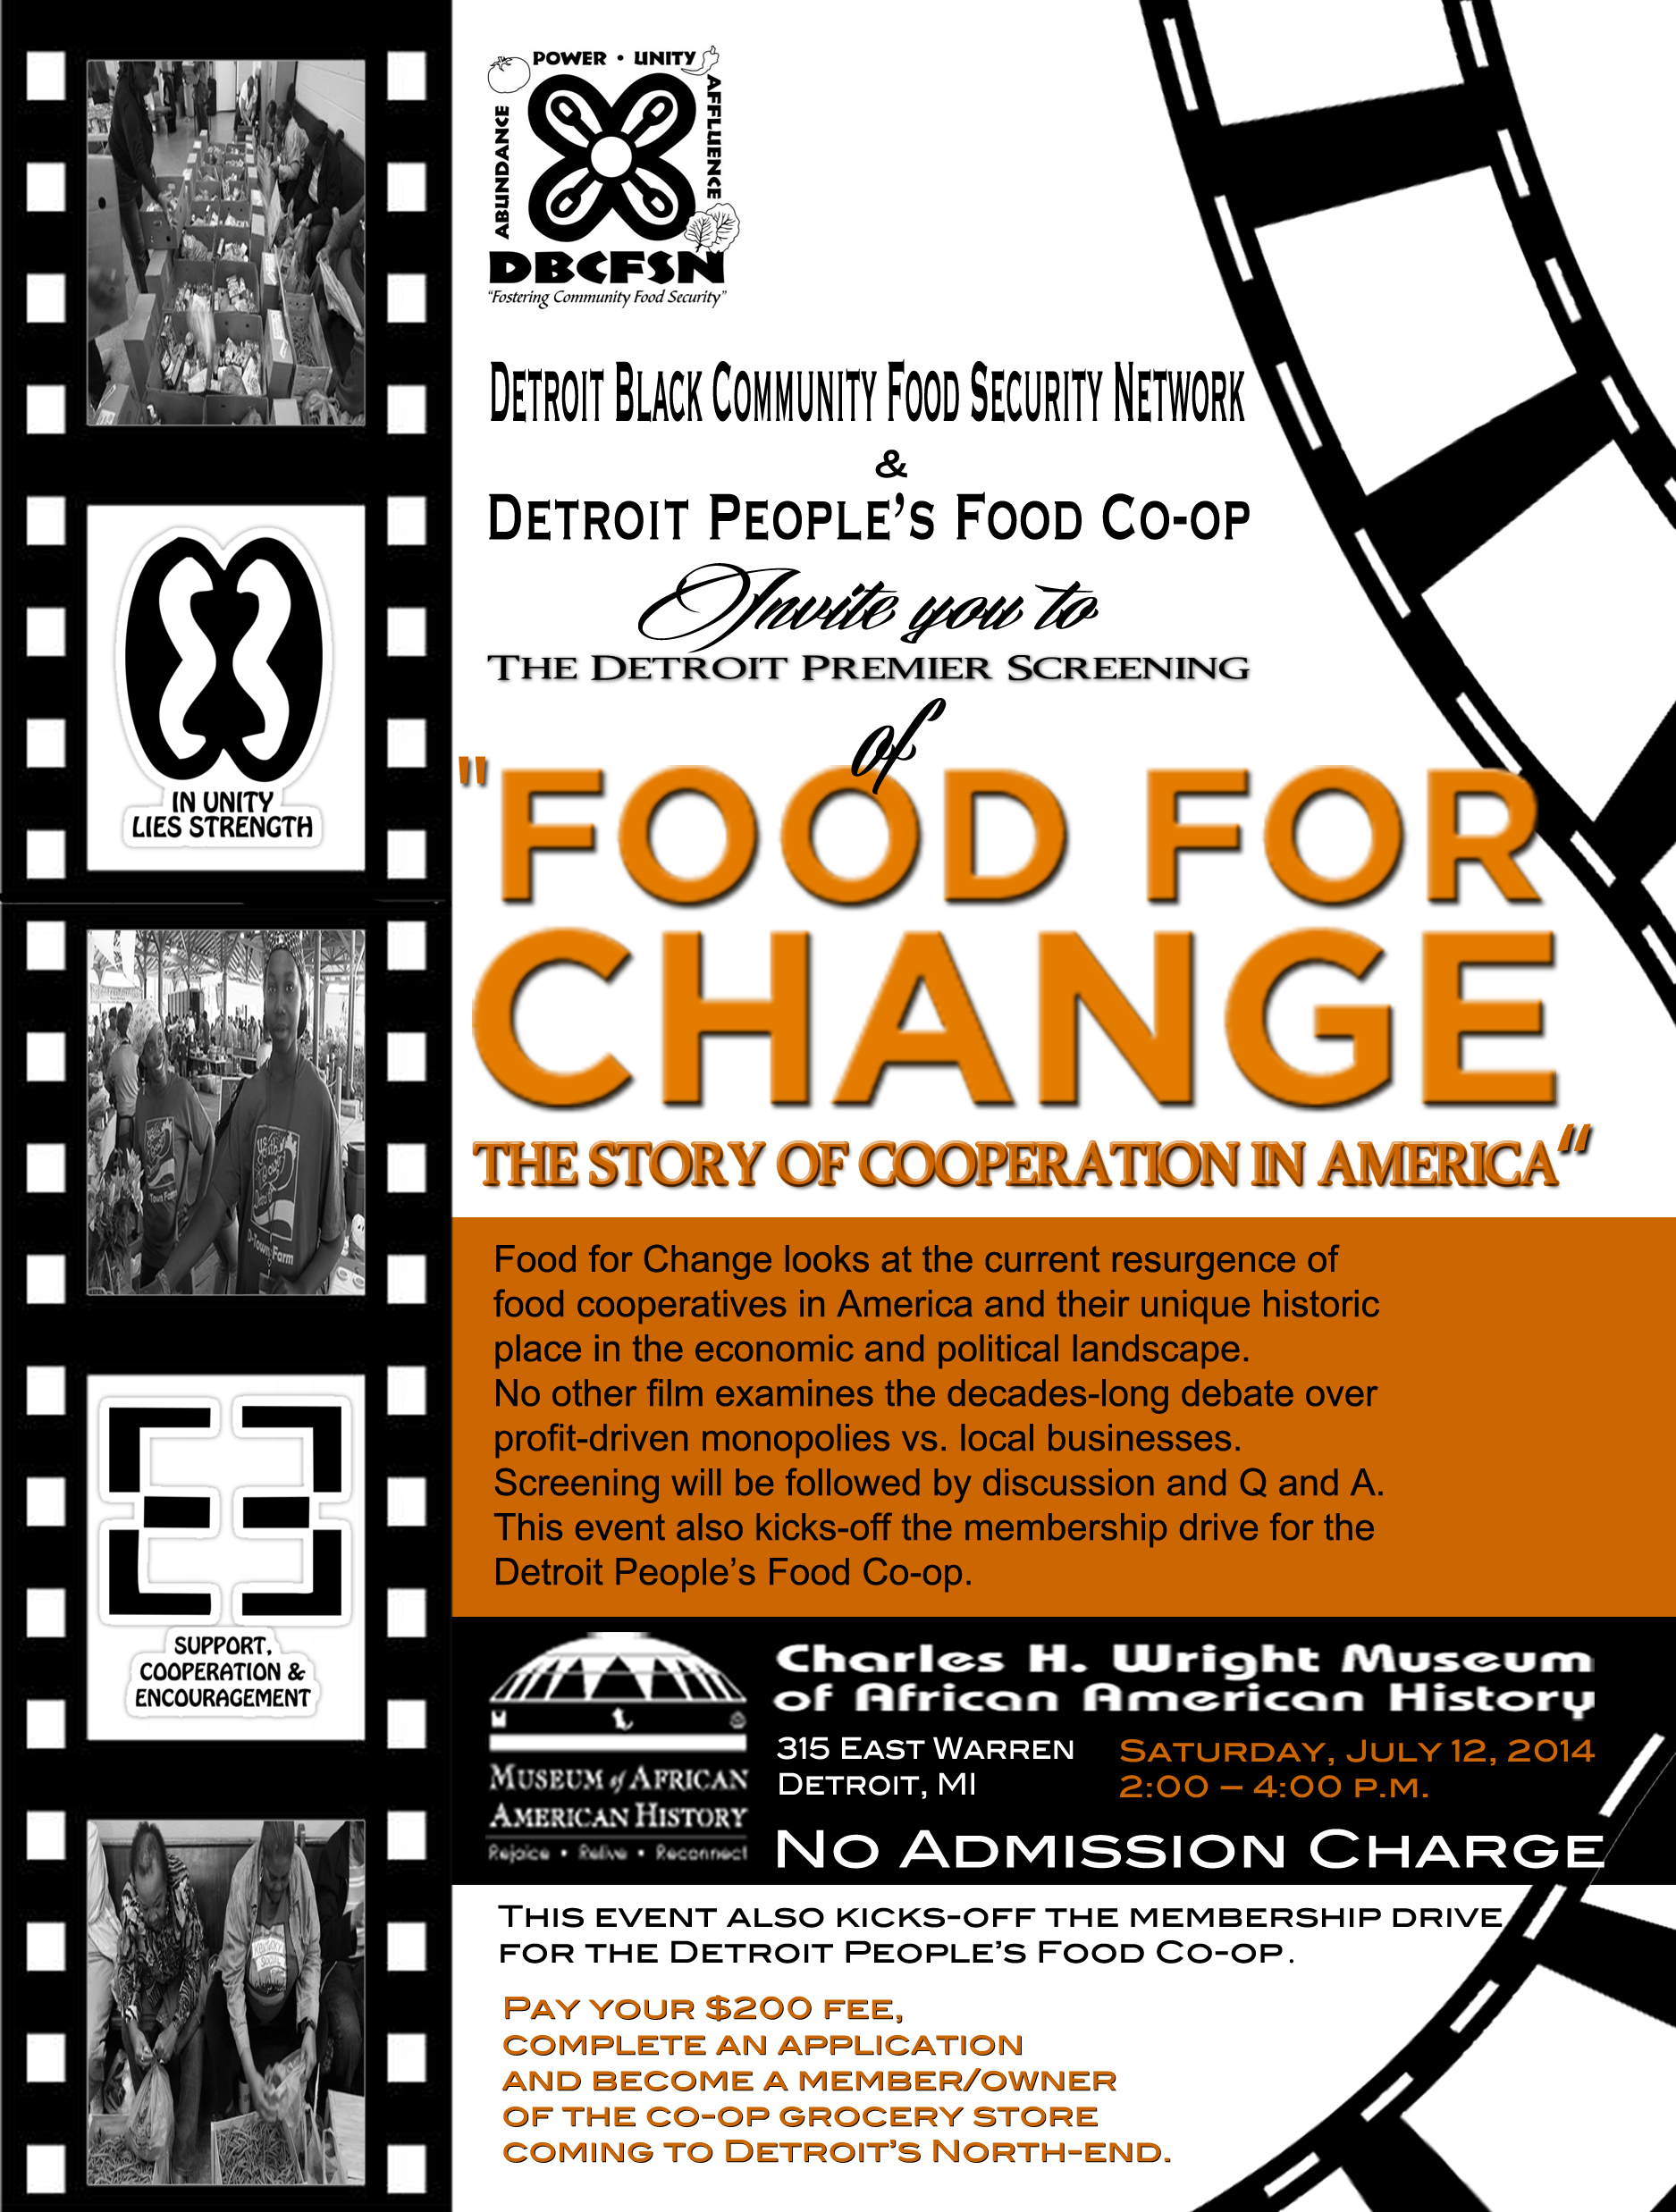 Detroit Black Food Security Network Screening at the Charles H